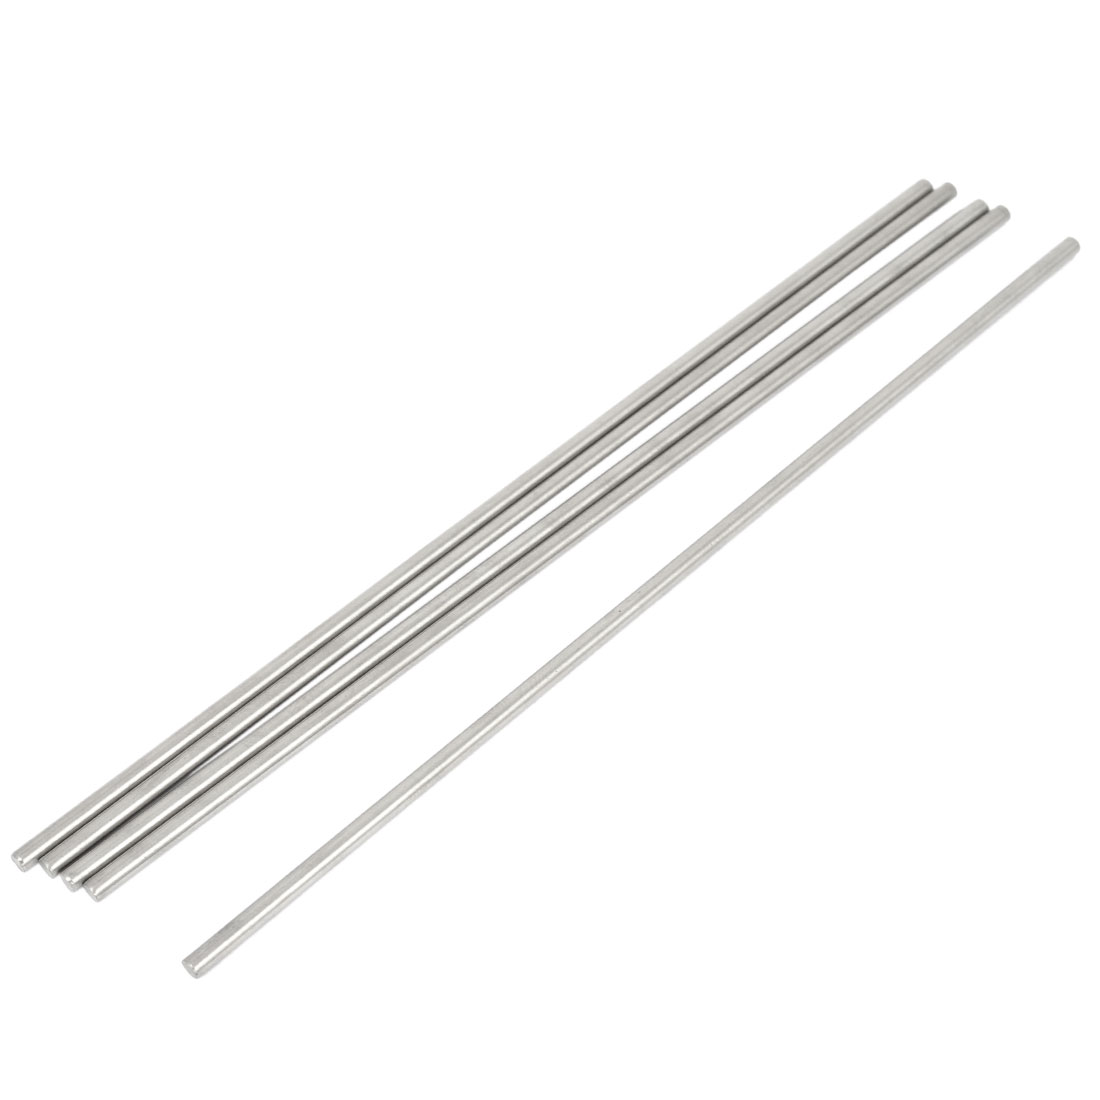 5 Pcs 3mm Dia 17cm Long Stainless Steel RC Helicopter Transmission Round Rods